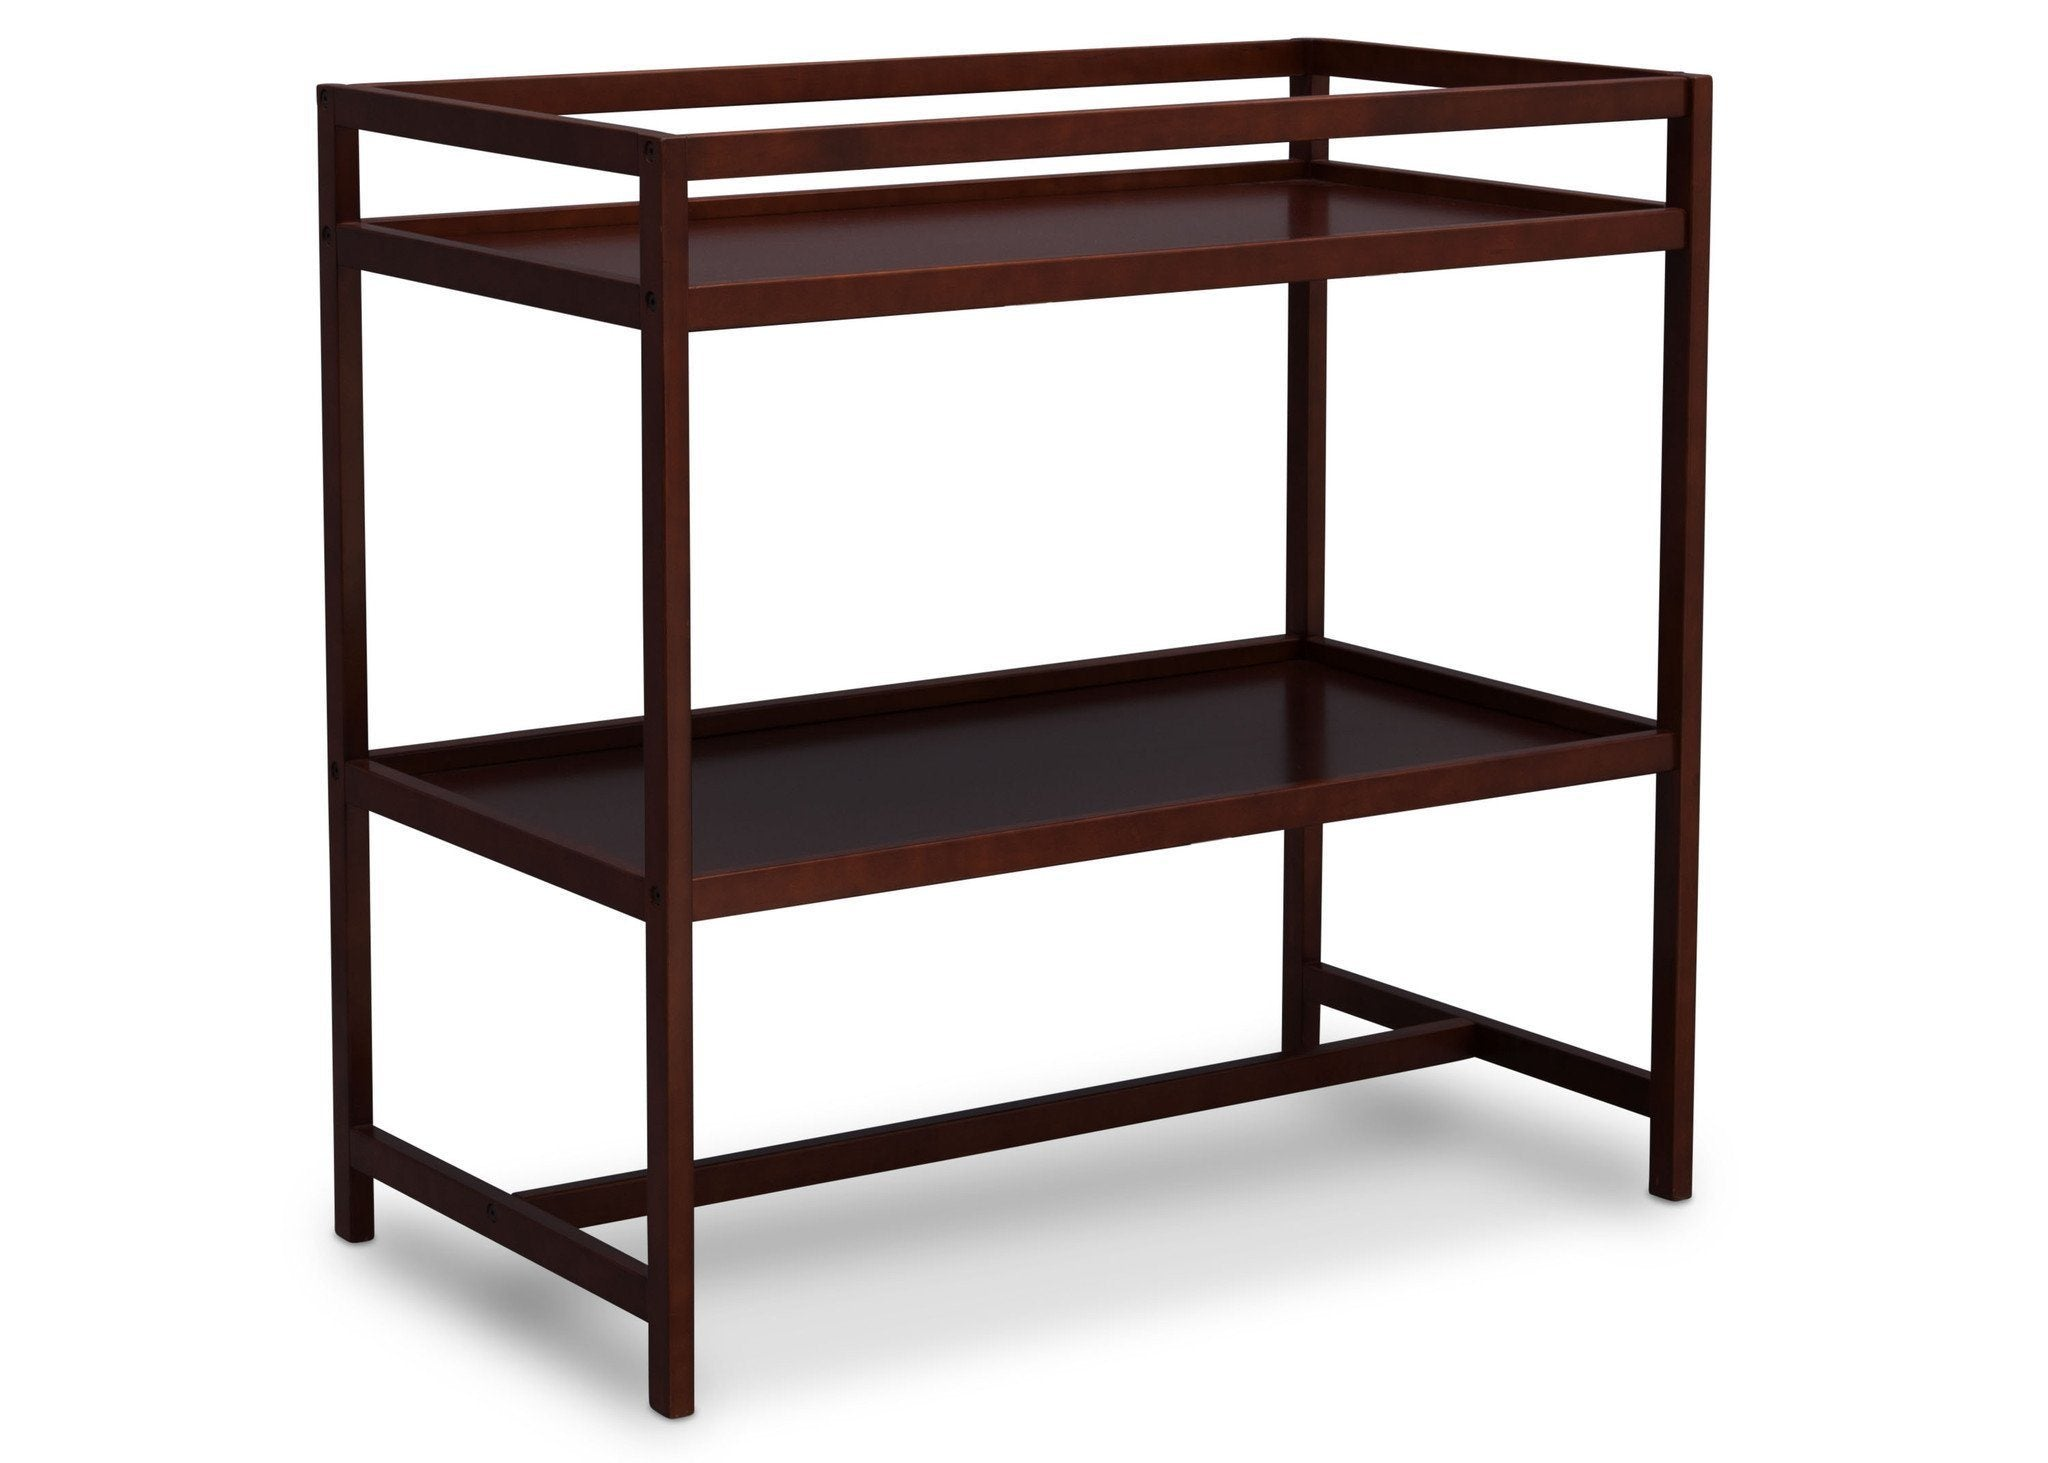 Delta Children Dark Chocolate (207) Harbor Changing Table, Side View c2c